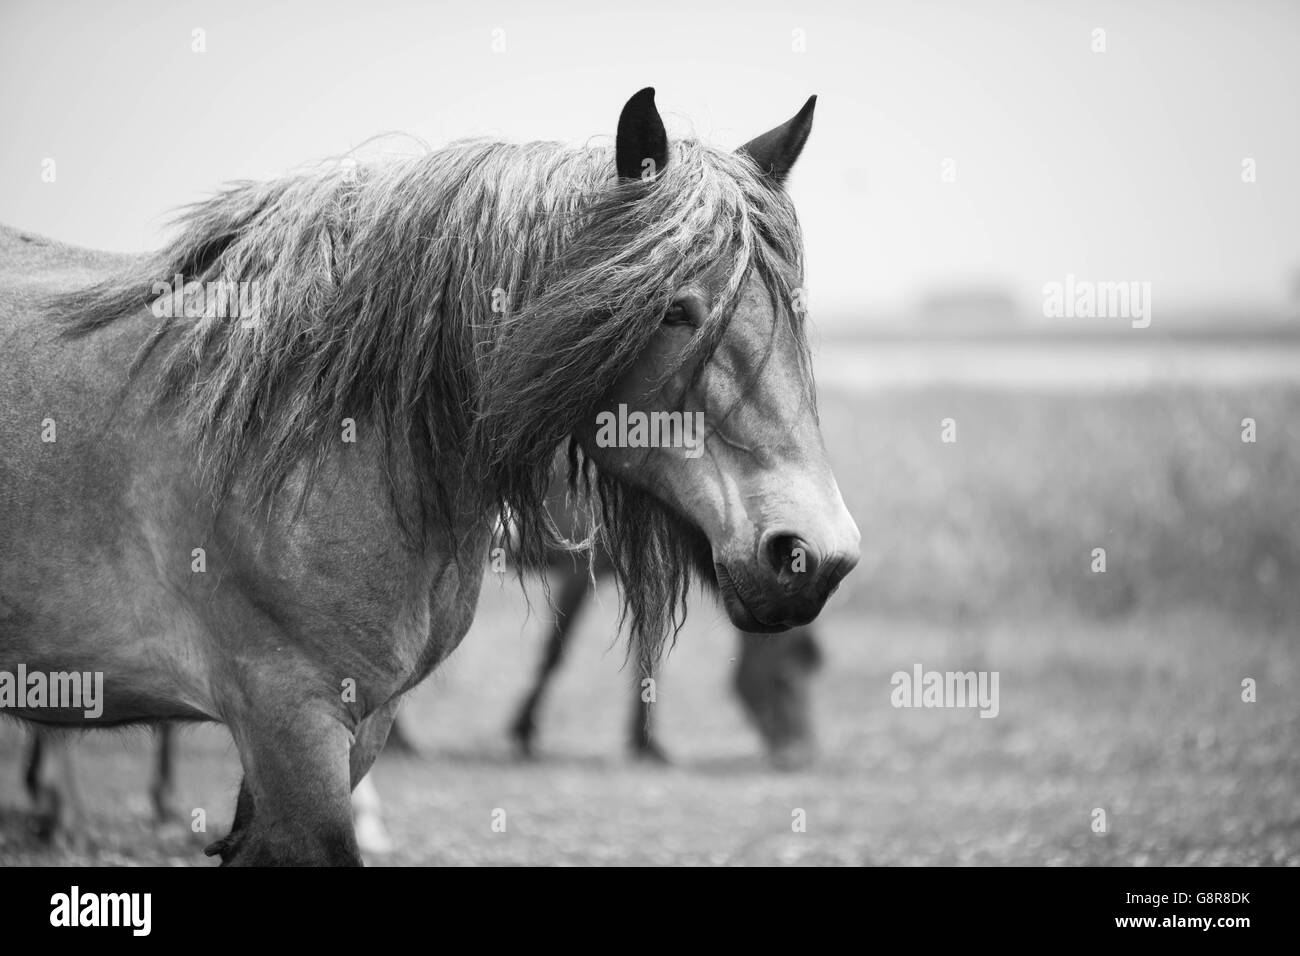 Black And White Photo Of European Wild Horses In The Open Field Stock Photo Alamy